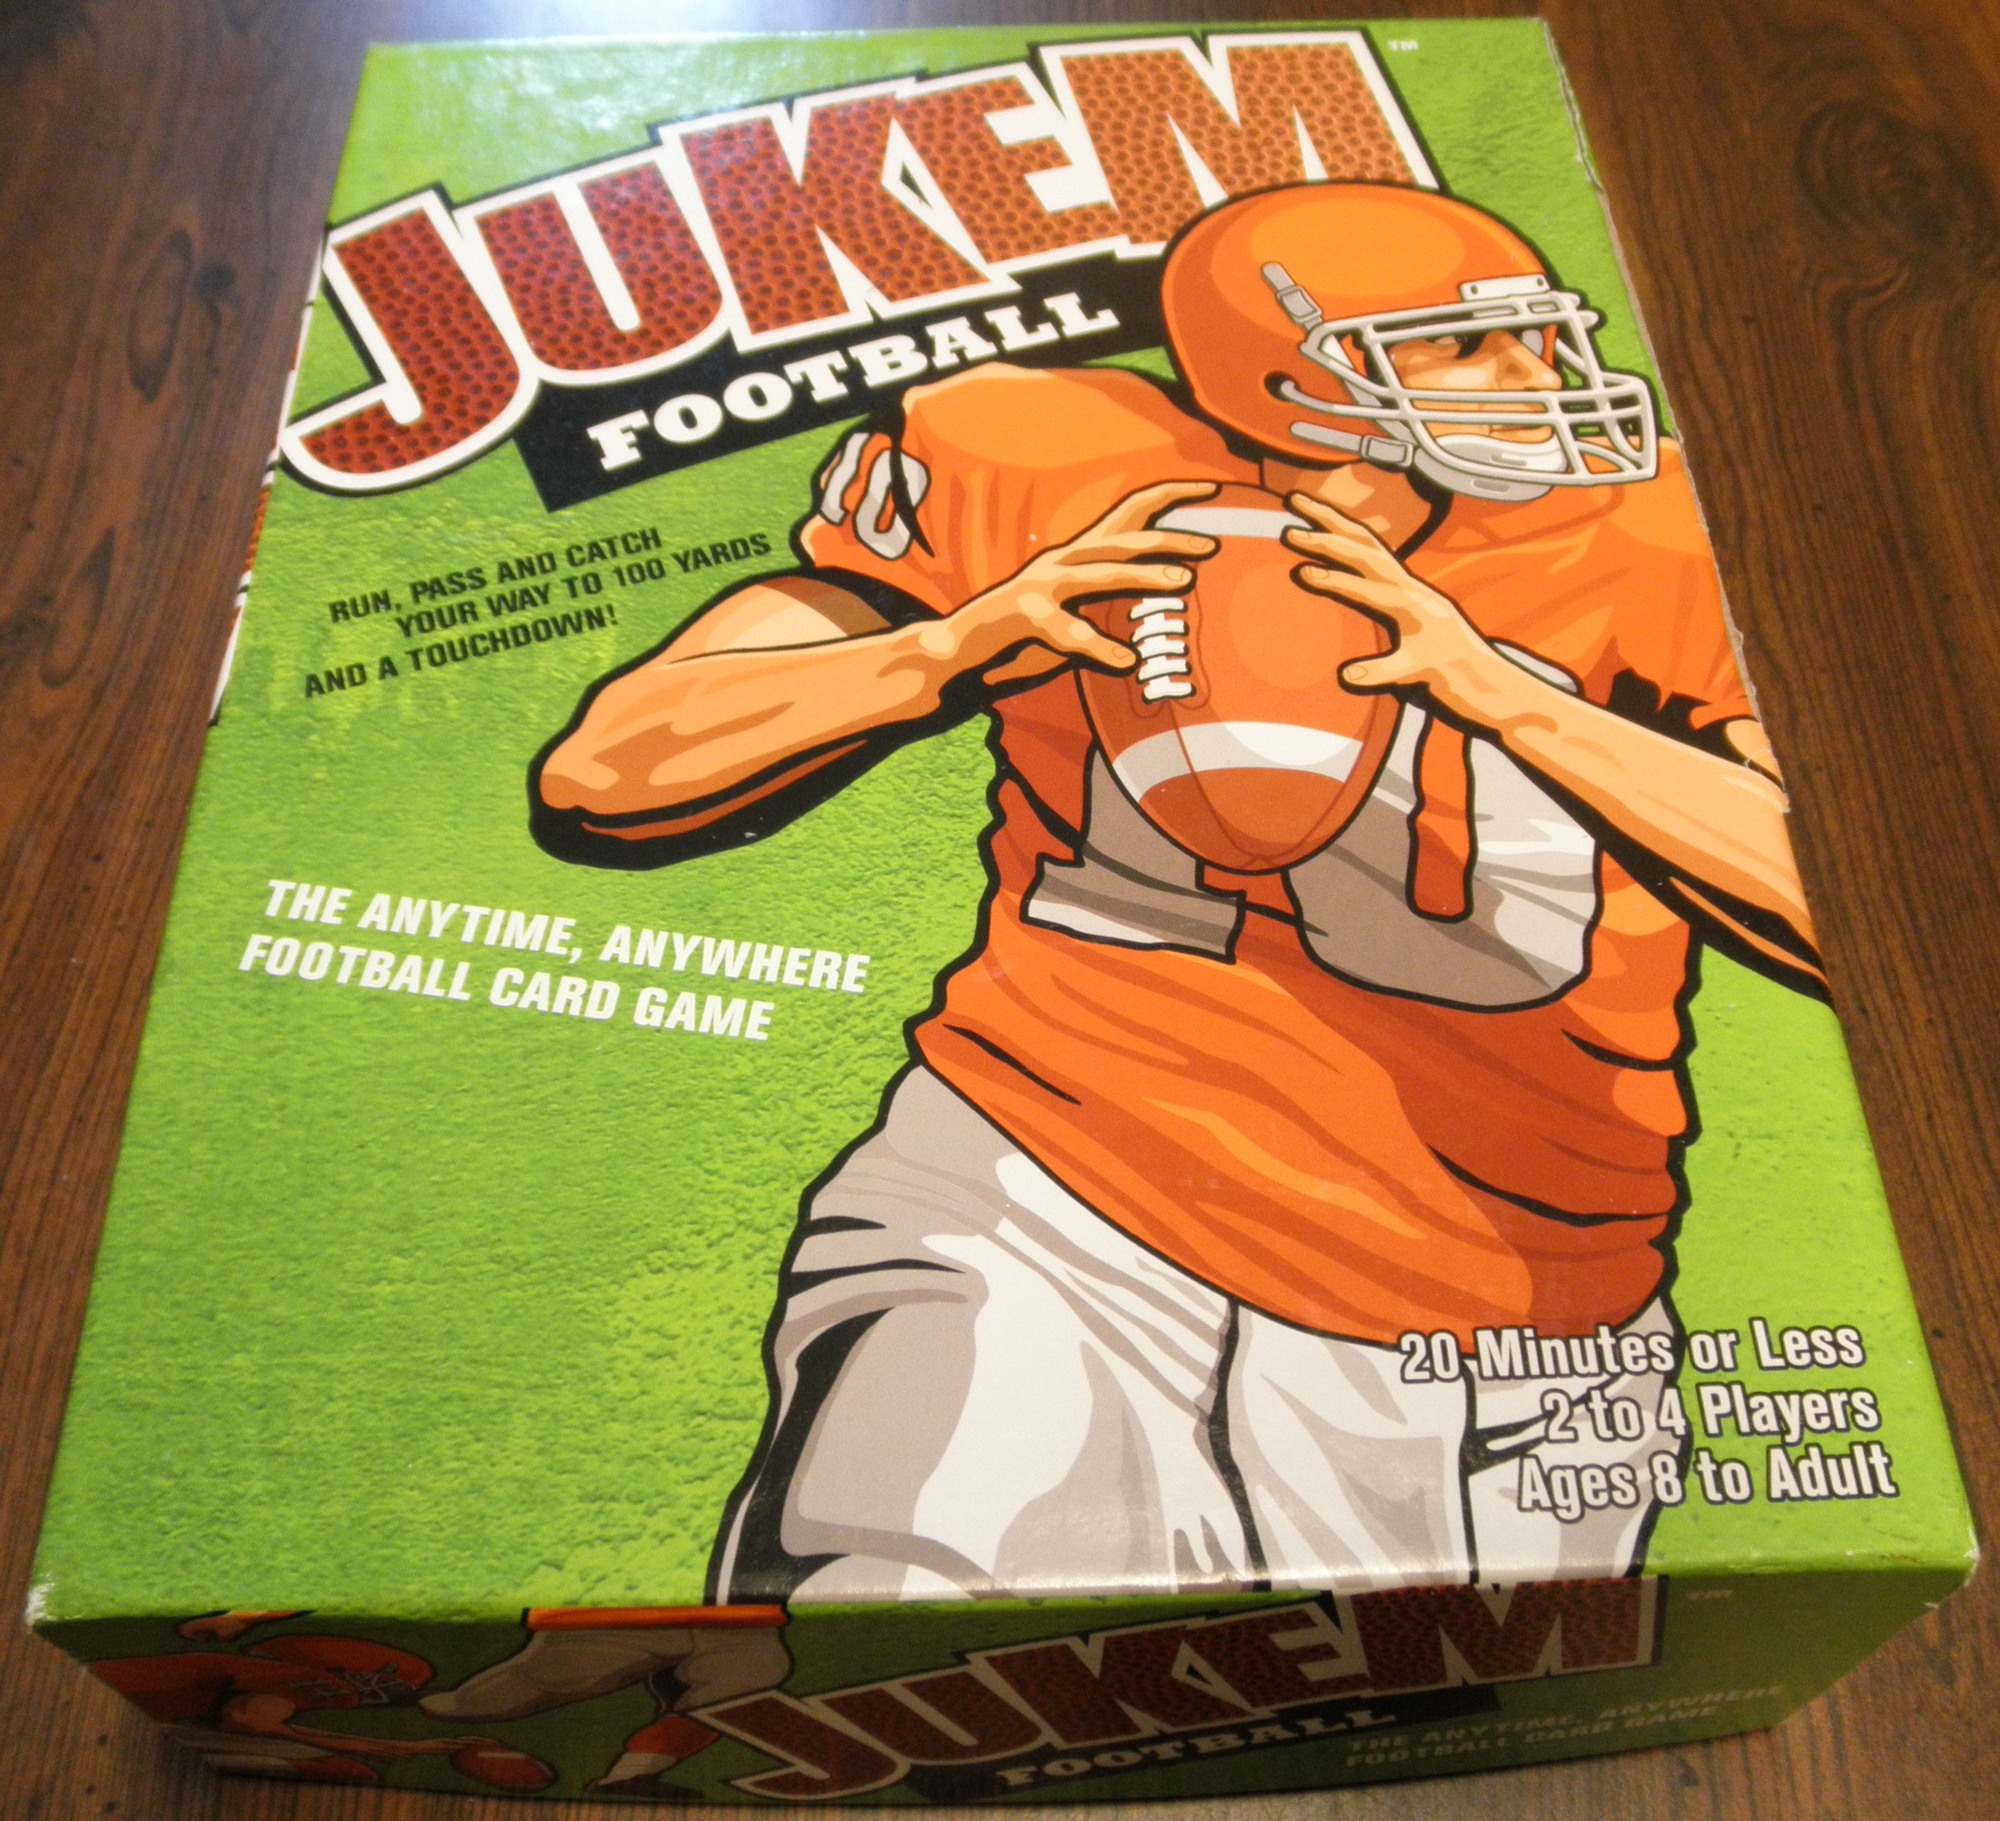 Jukem Football Card Game Box